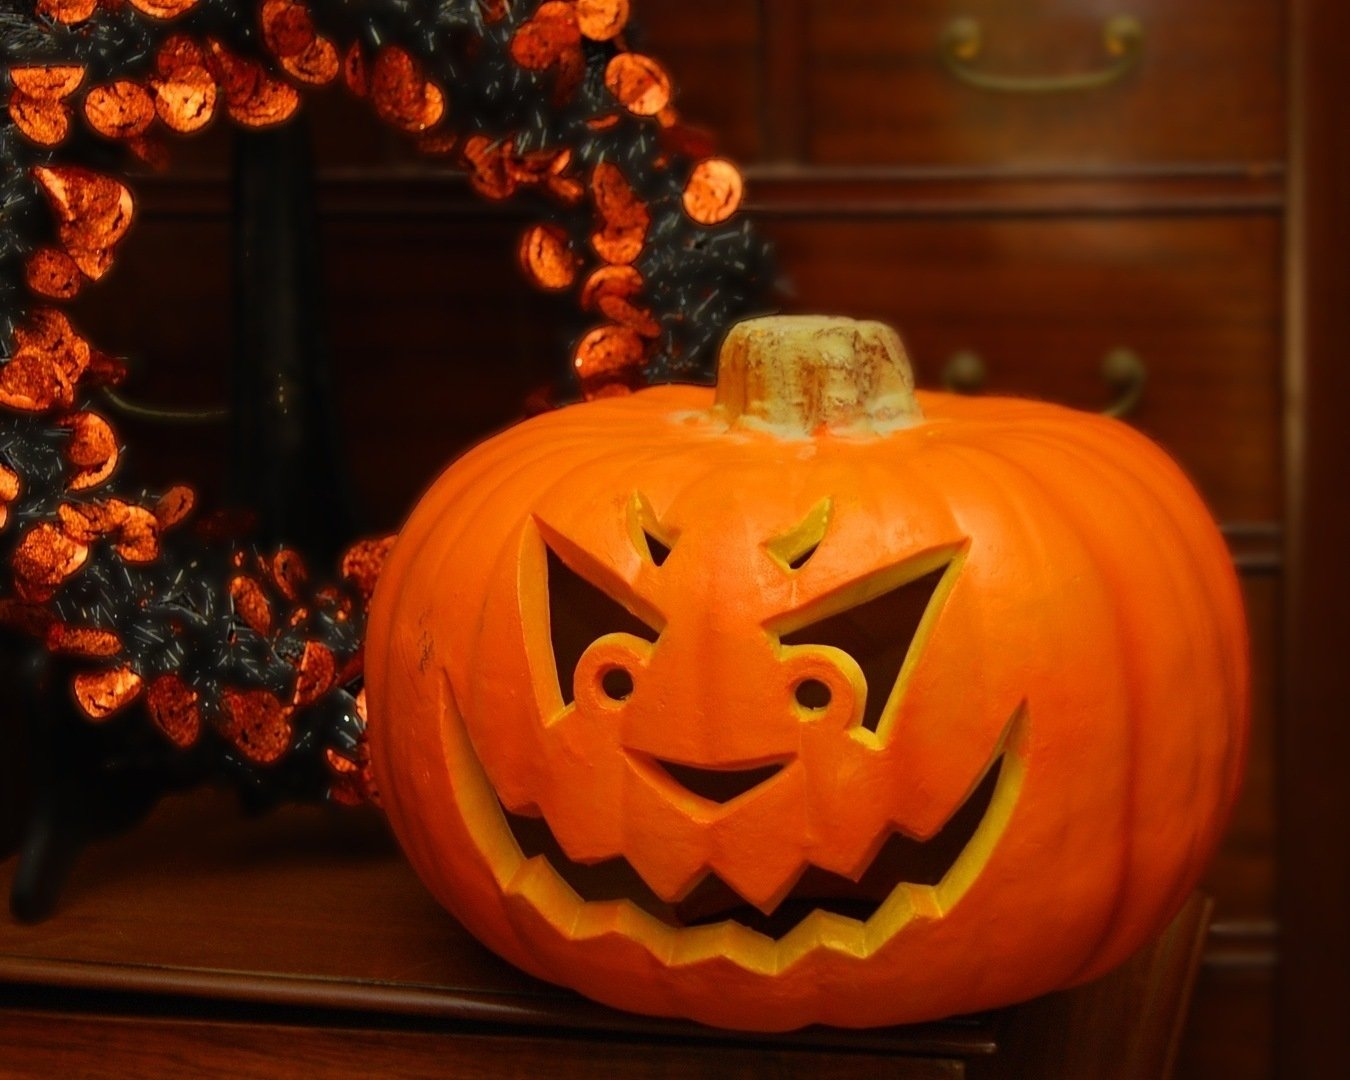 10 Lovable Cool And Easy Pumpkin Carving Ideas best 25 easy pumpkin carving patterns ideas on pinterest easy office 1 2020